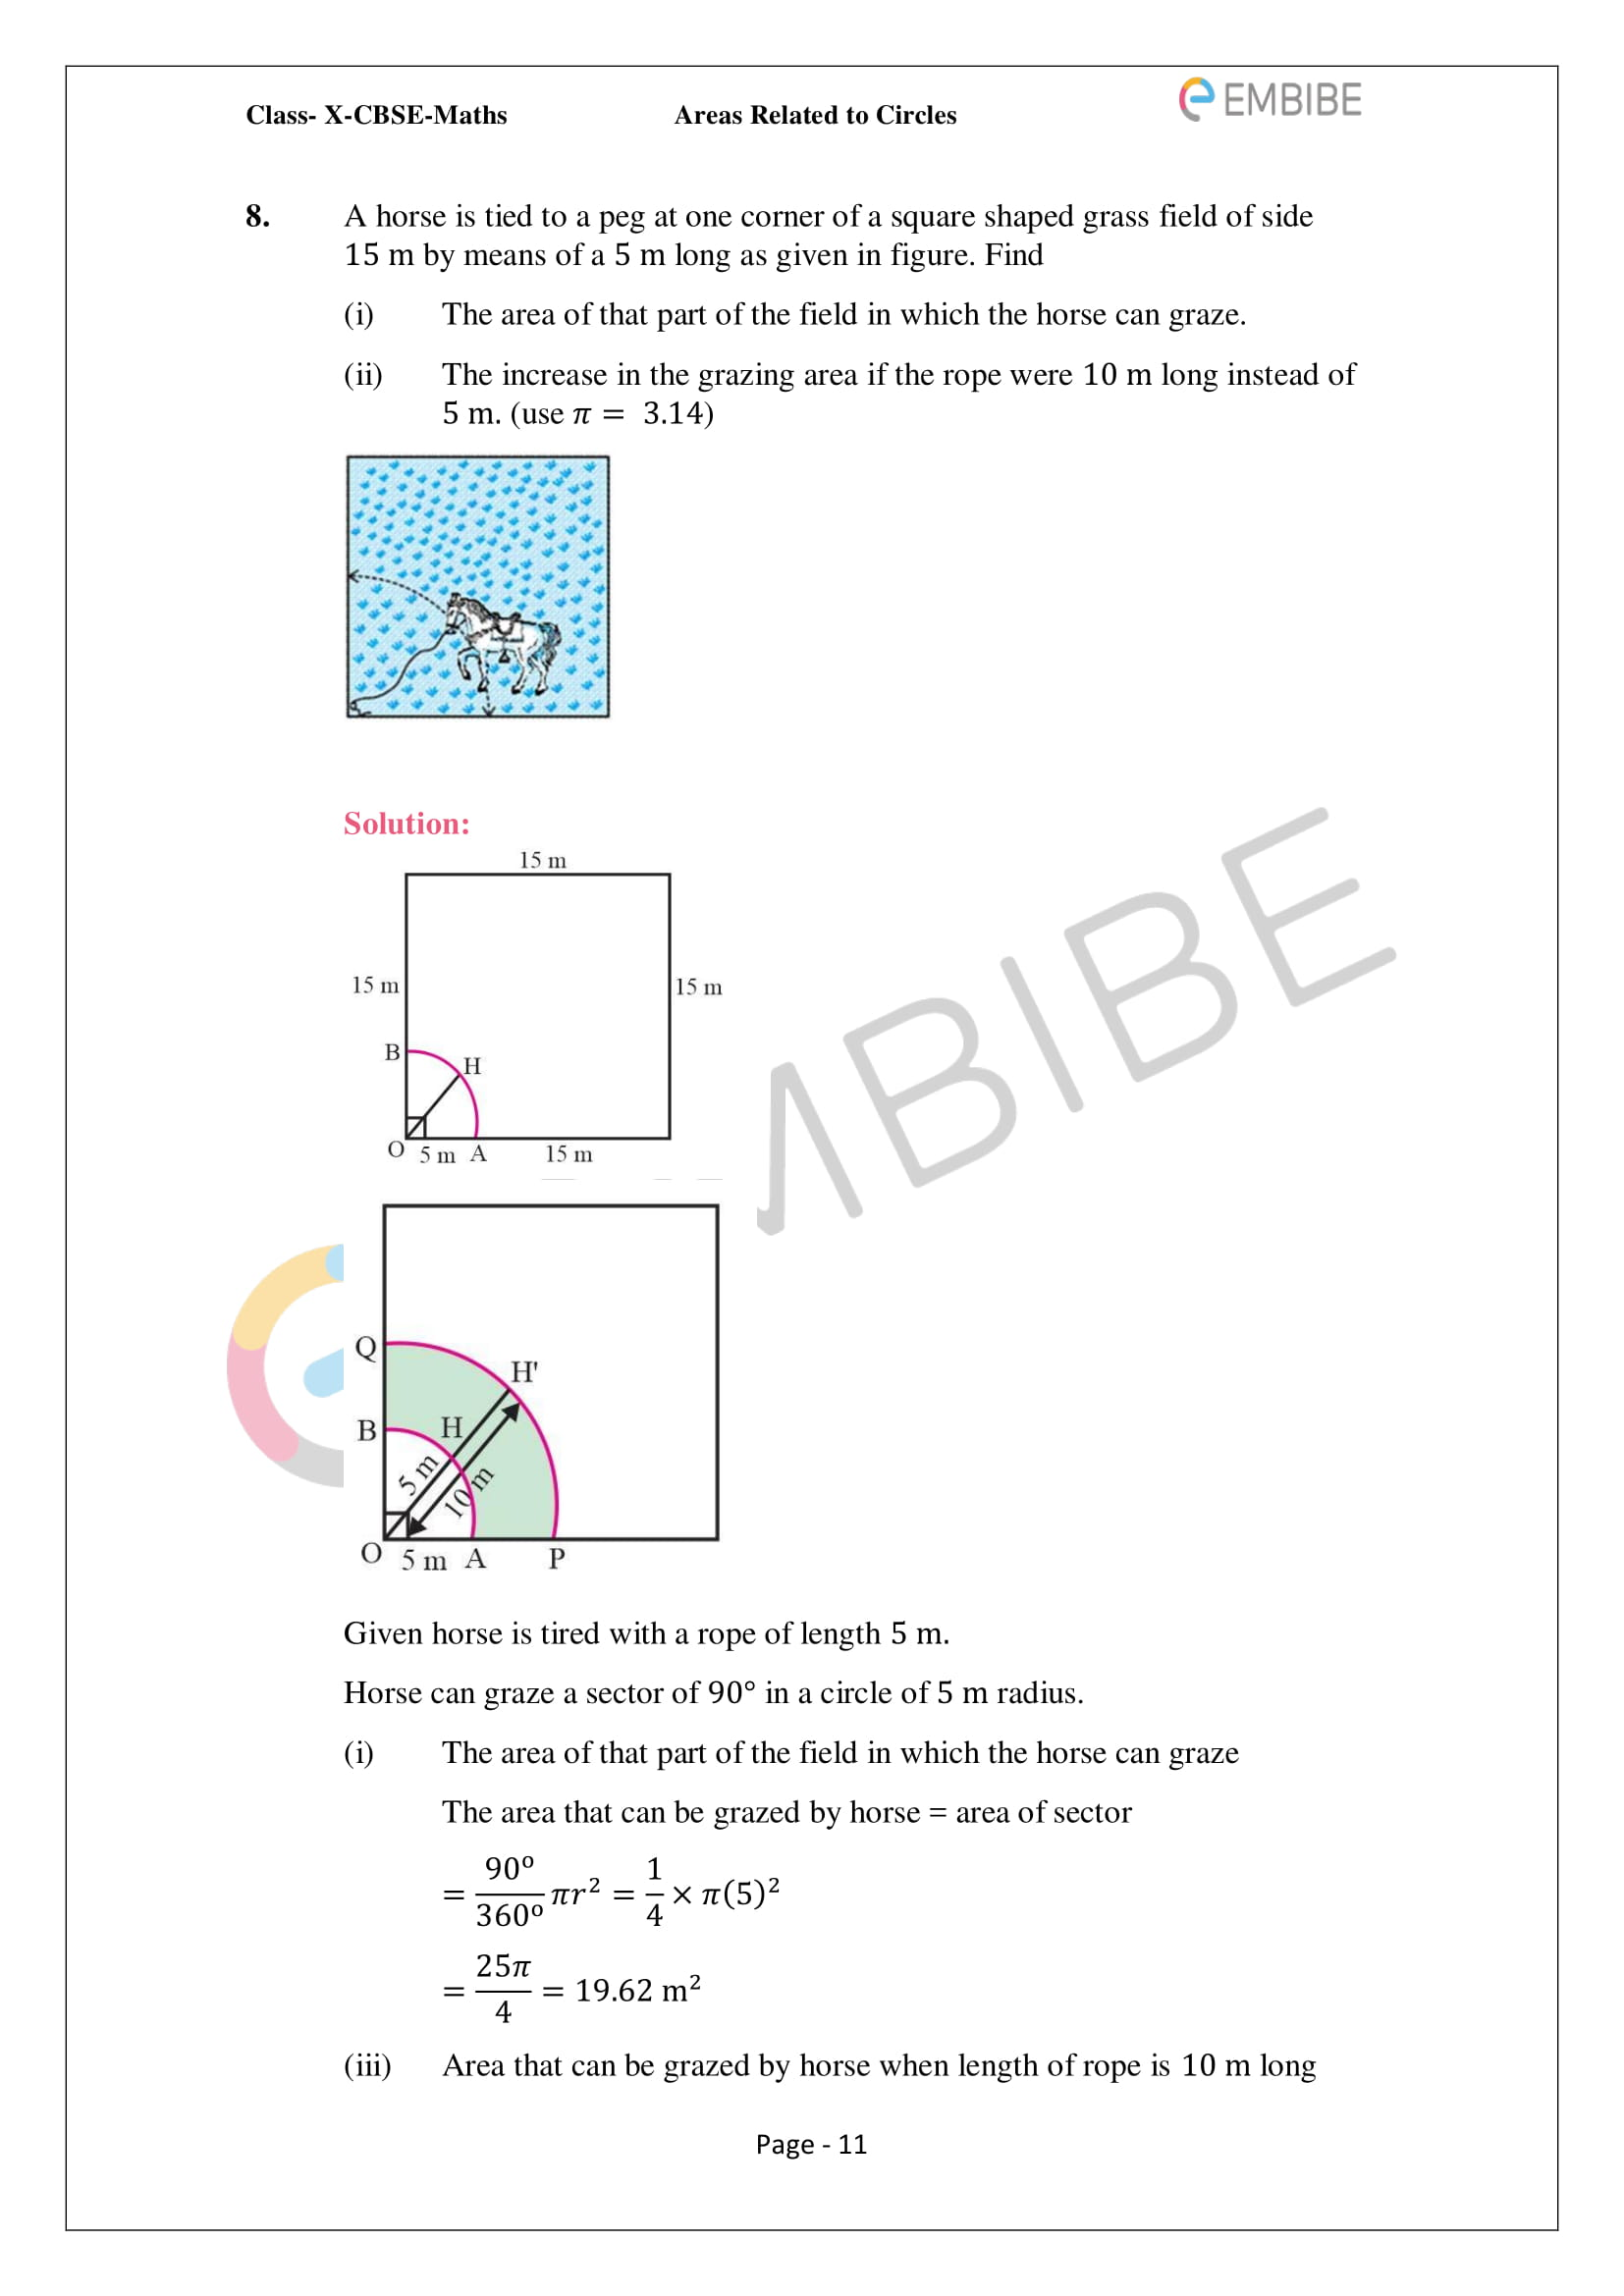 CBSE NCERT Solutions For Class 10 Maths Chapter 12 - Areas Related To Circle - 11